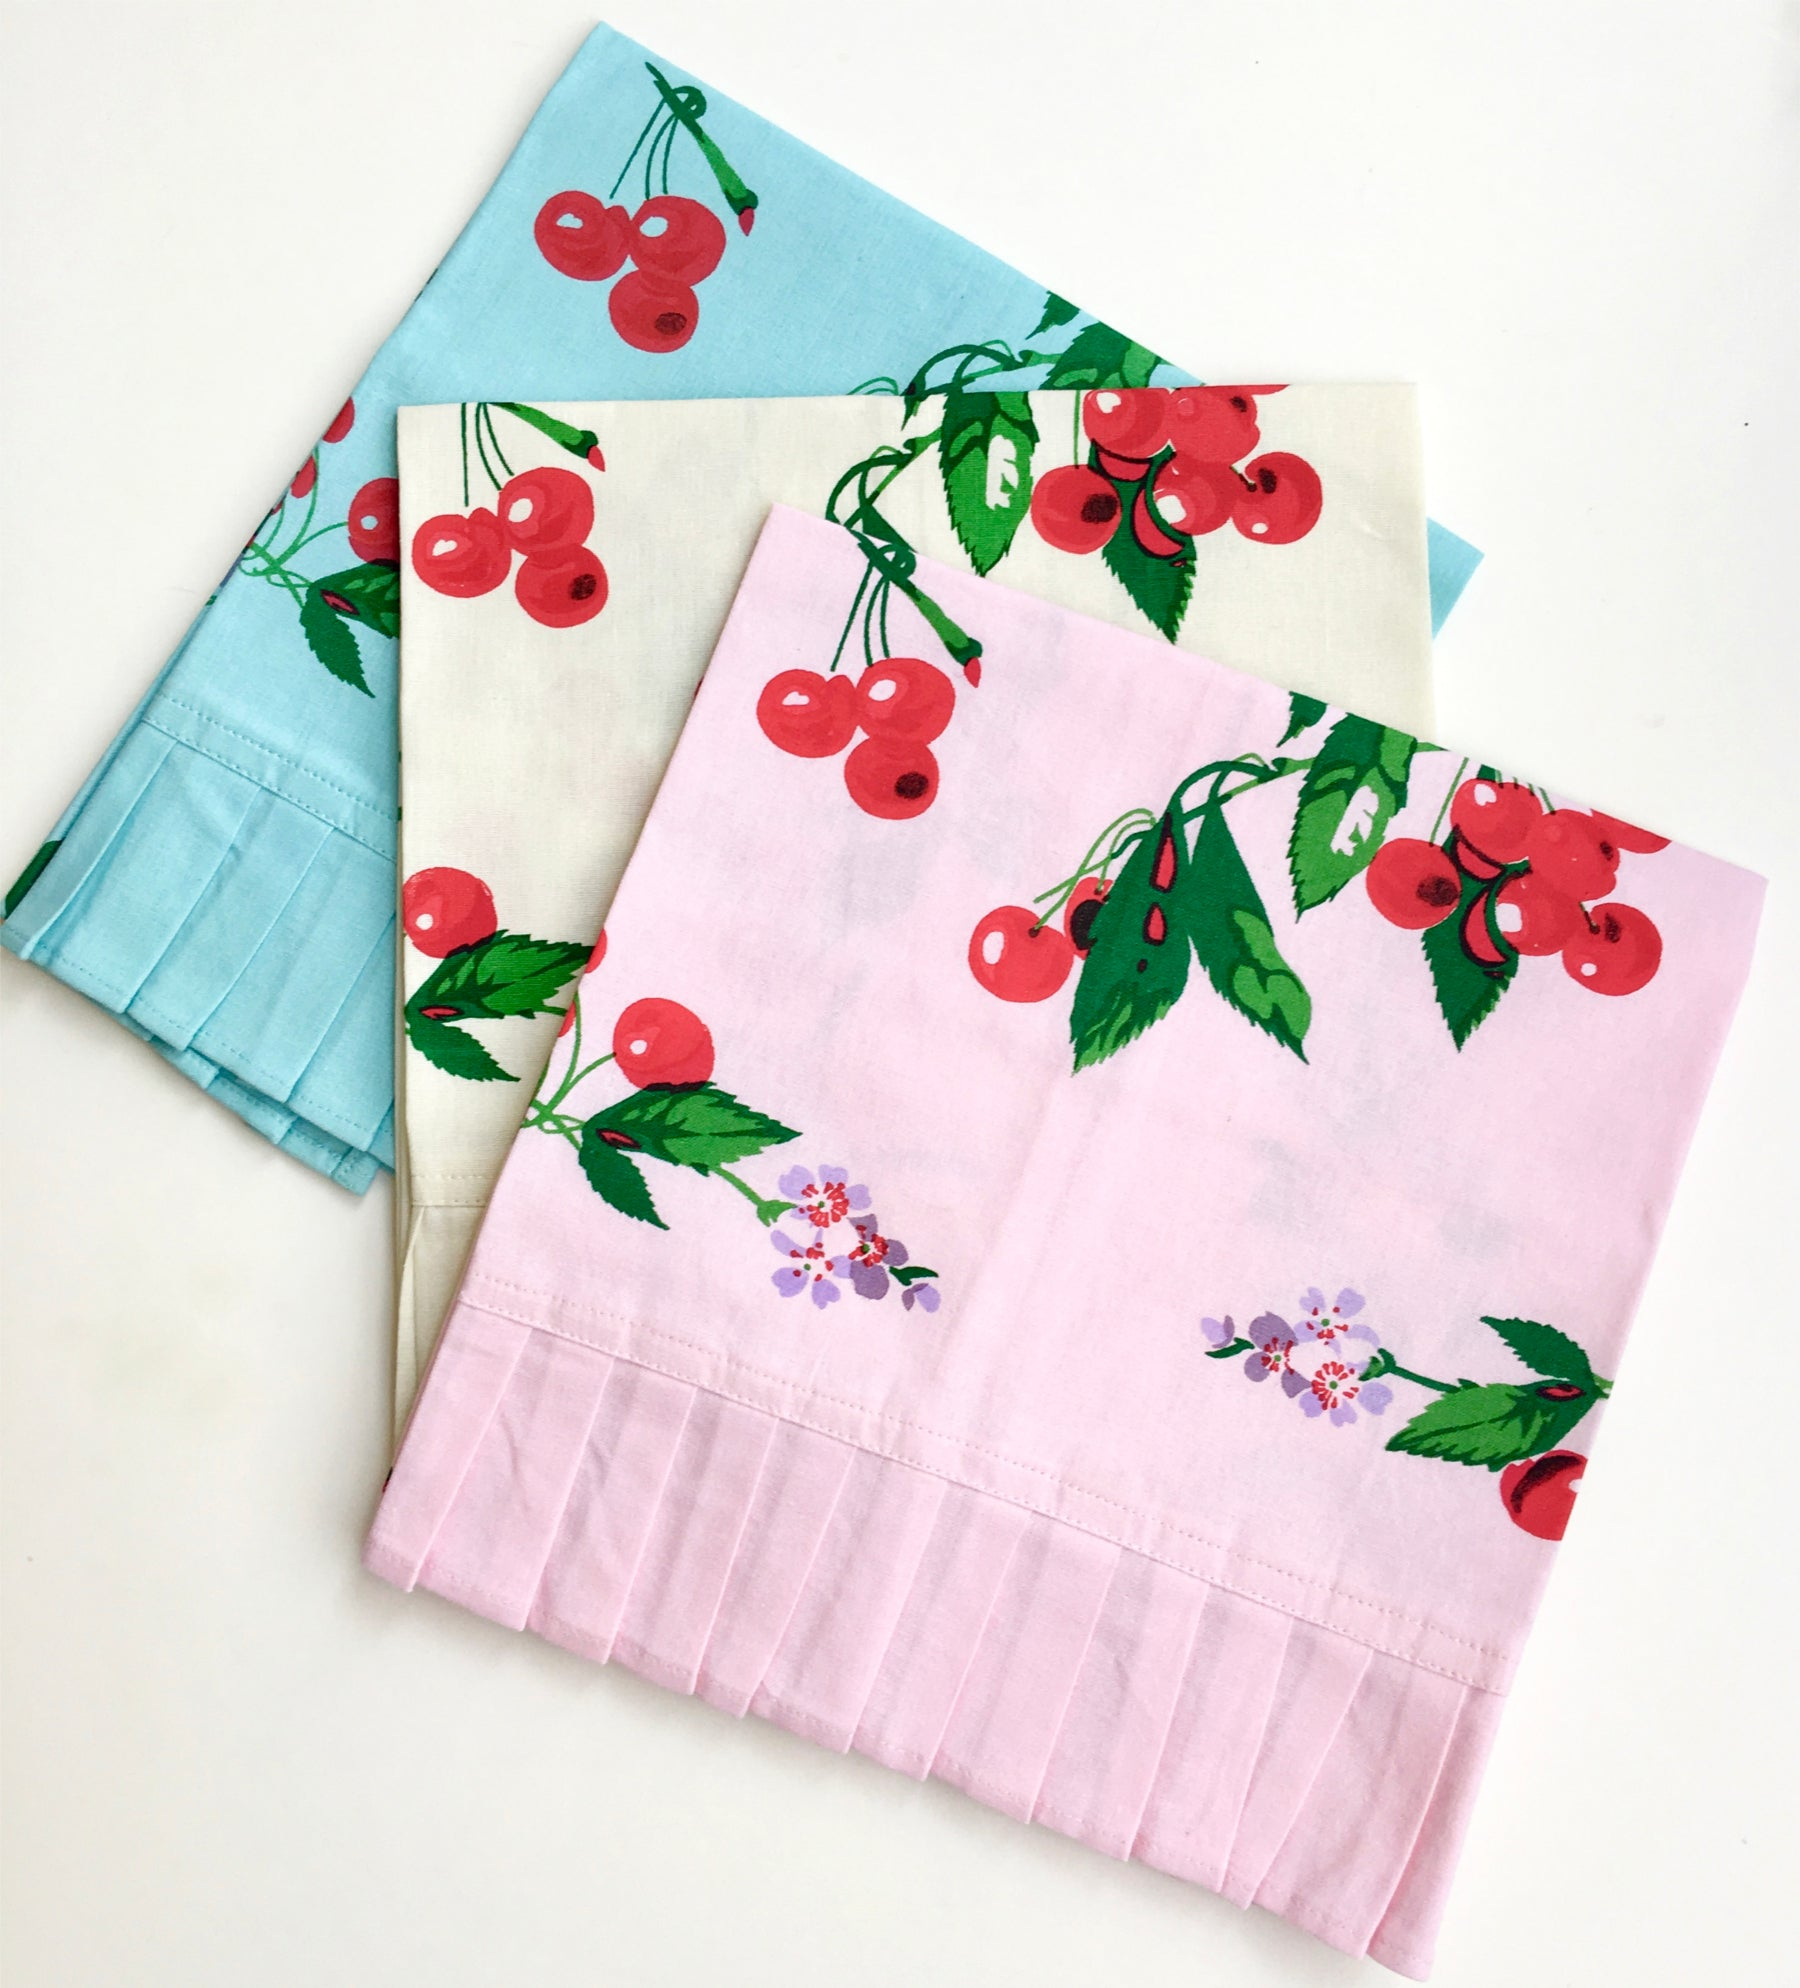 Retro Cherry Kitchen Towels - Vintage Inspired